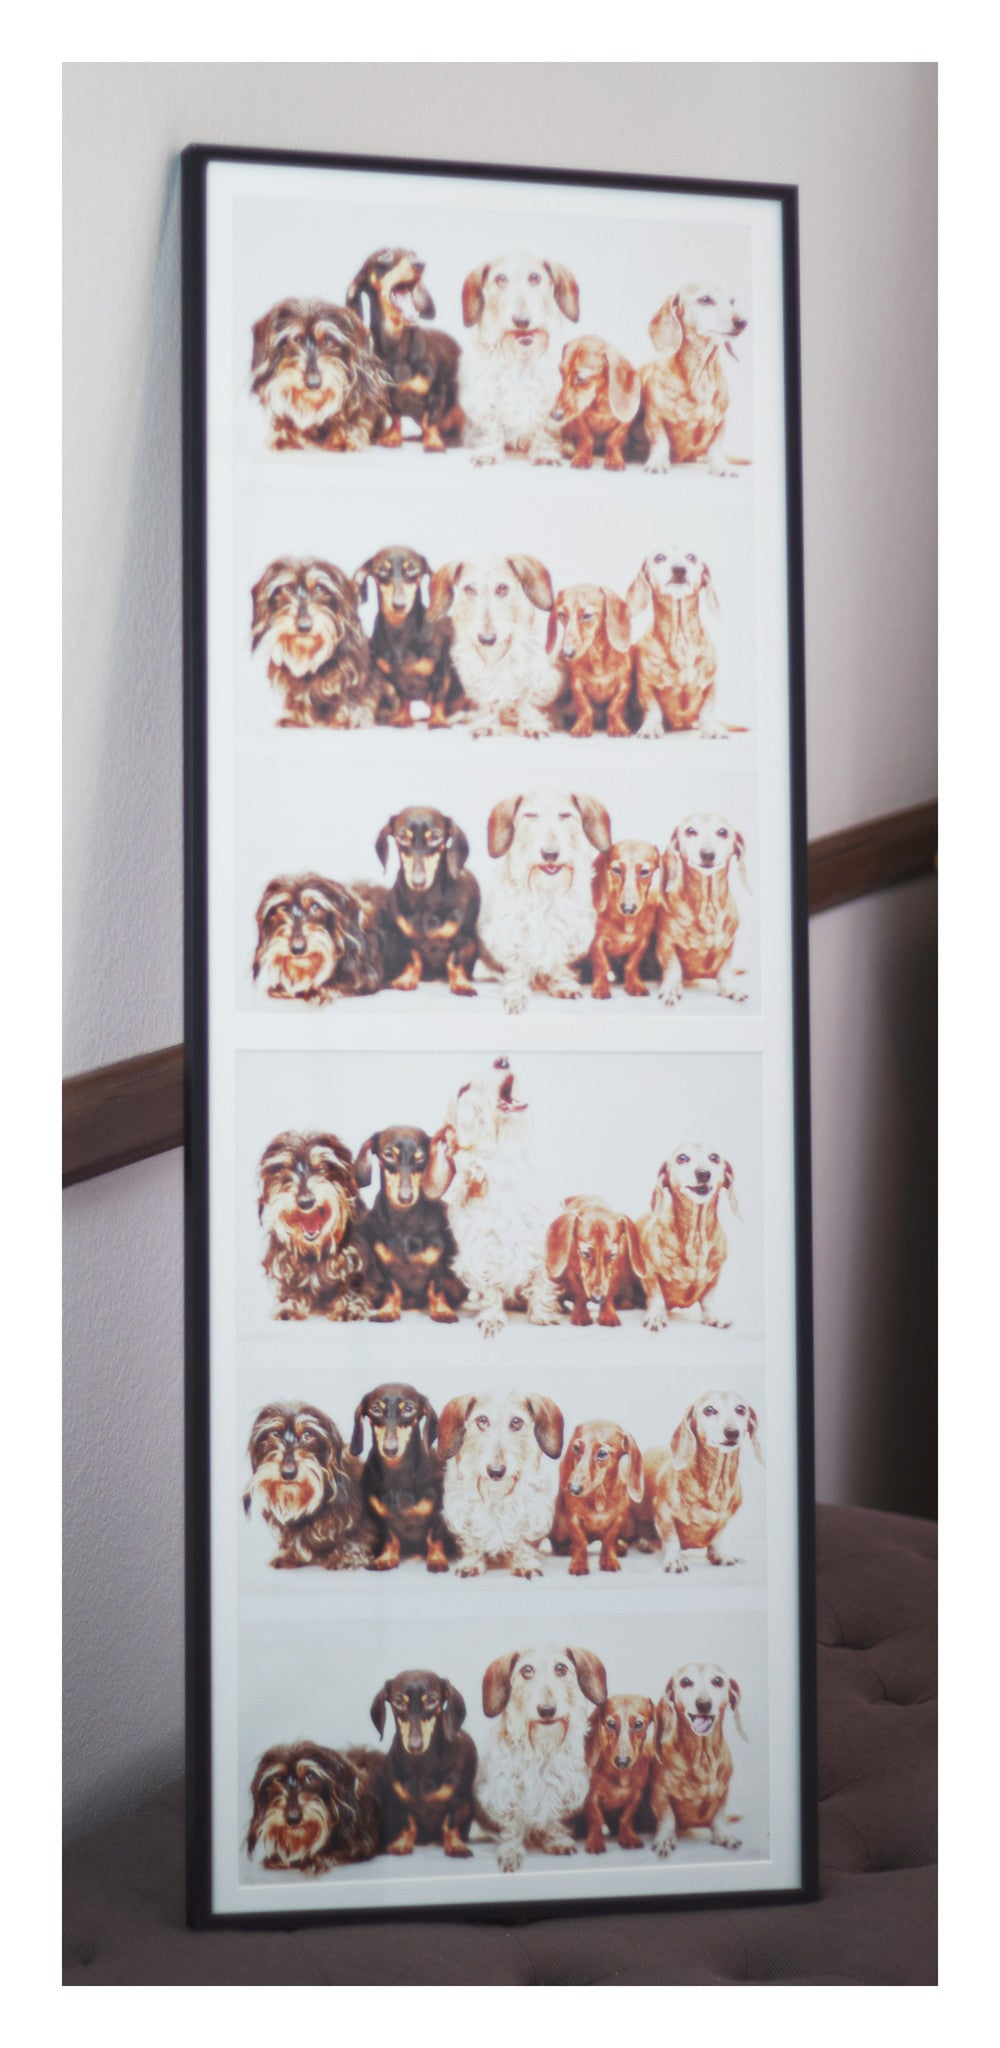 Original Artwork - Photo Booth Dachshunds